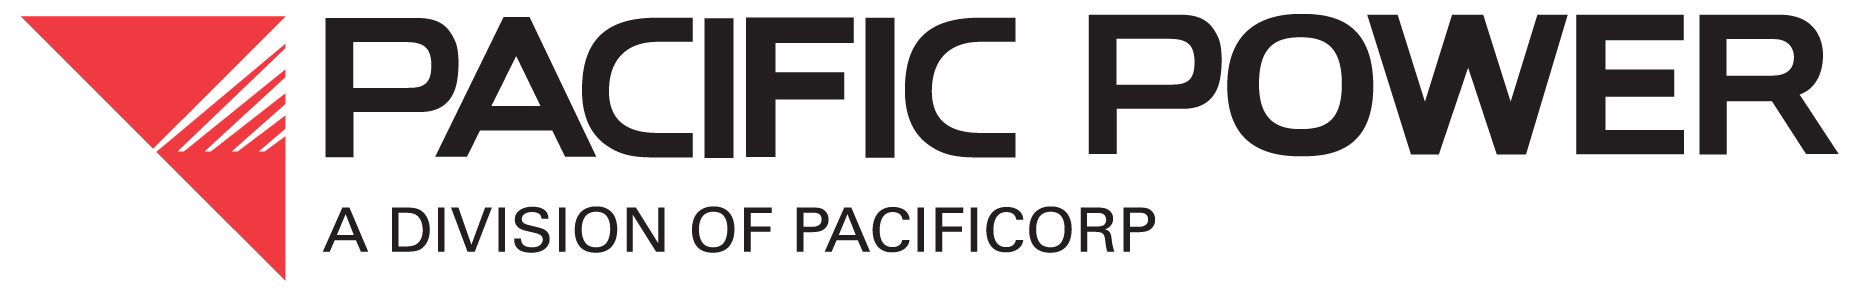 pacific power logo